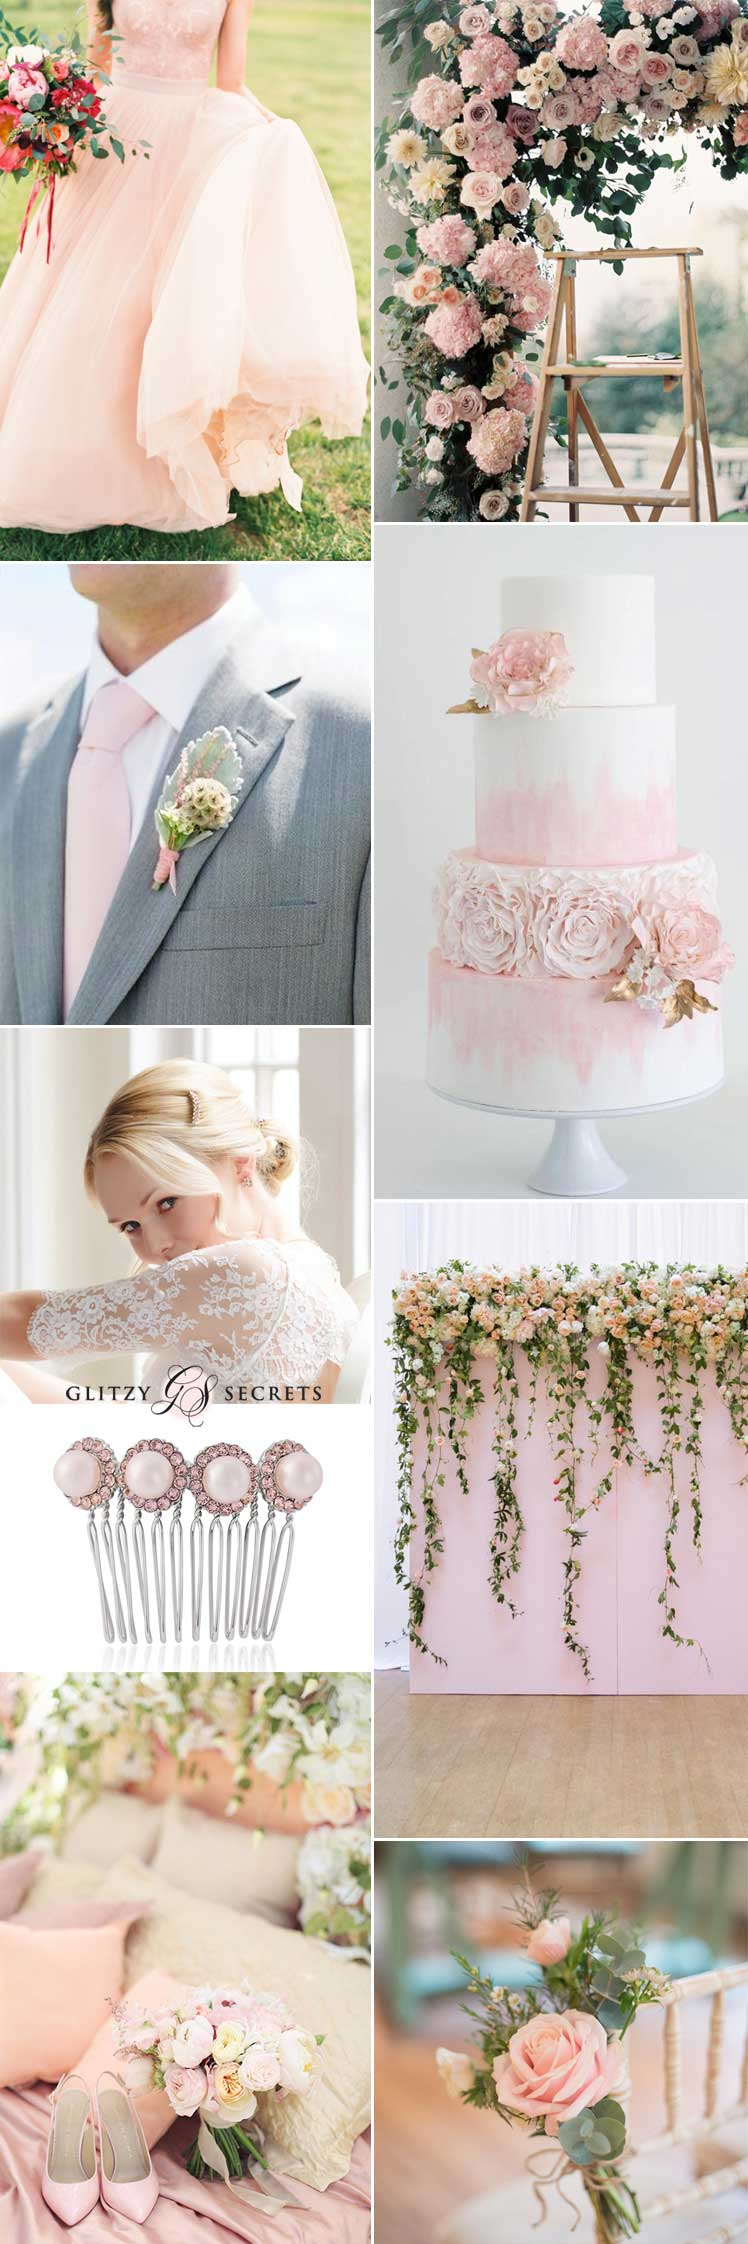 Perfect pink romantic wedding ideas